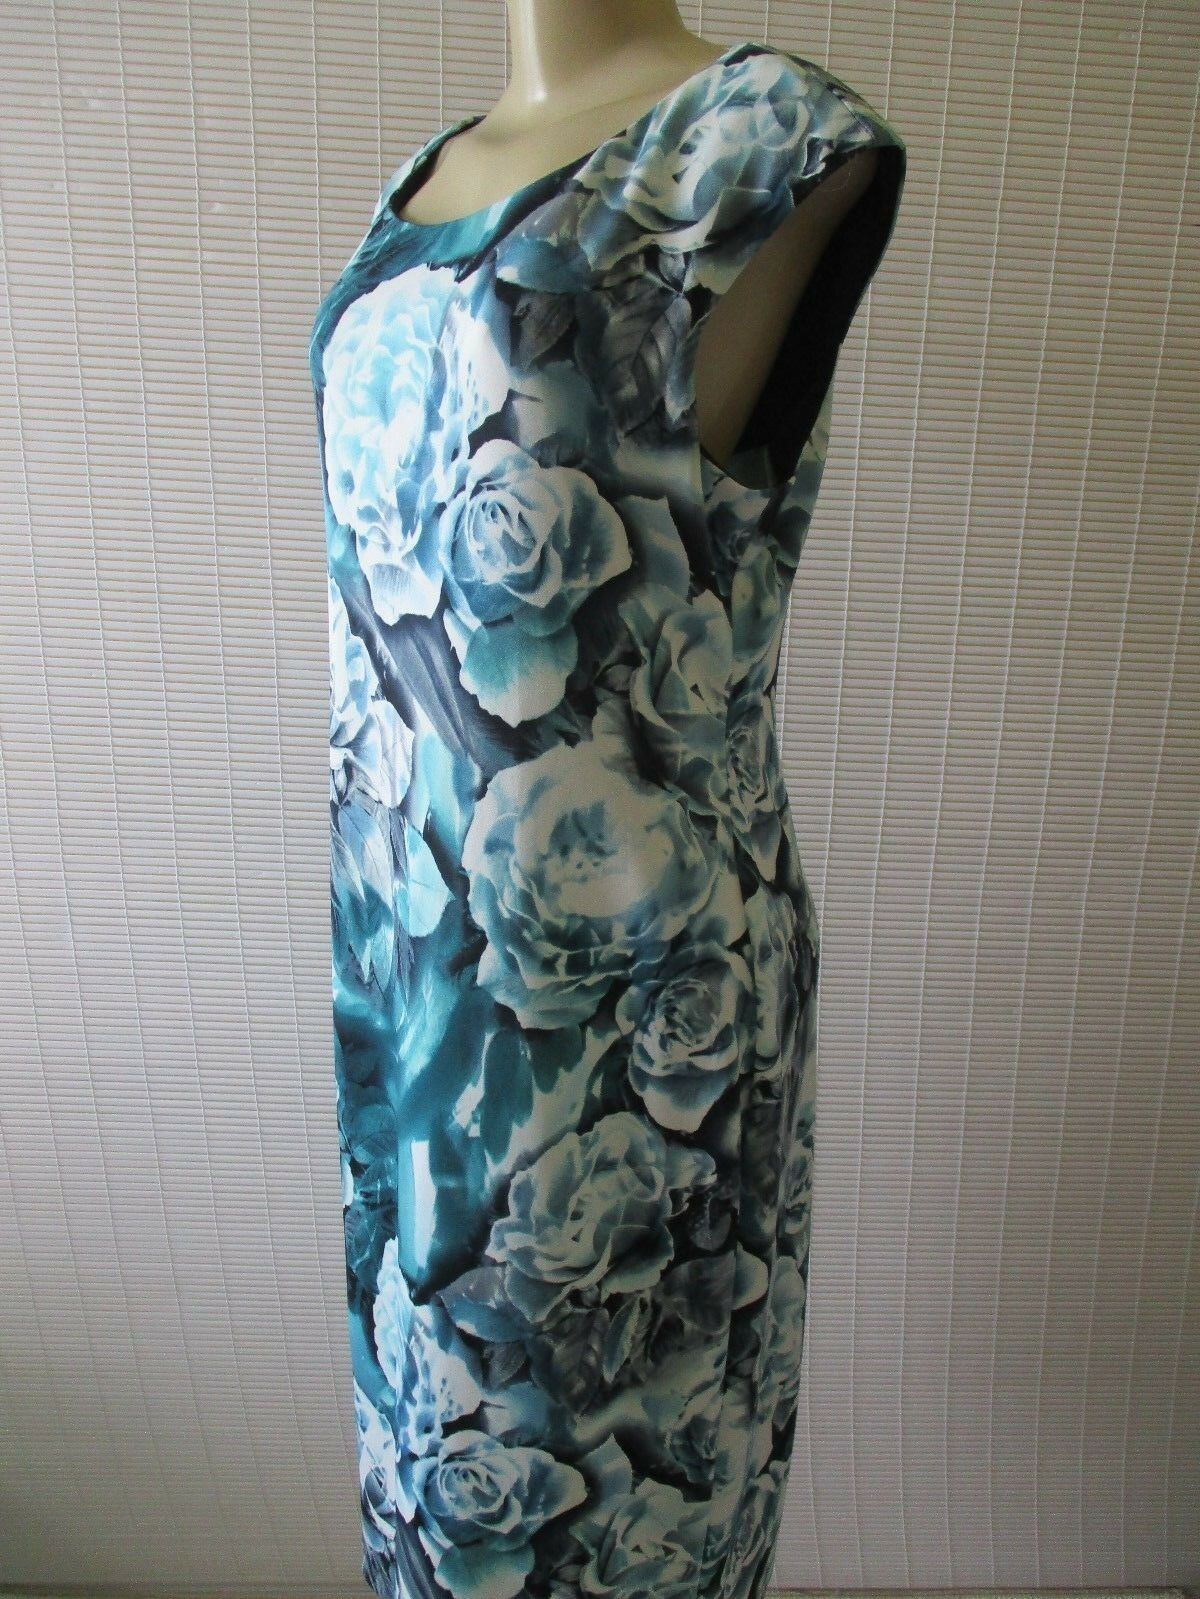 725d8c0a308 ... CONNECTED MULTI-COLOR FLORAL PRINT SLEEVELESS DRESS DRESS DRESS SIZE 14  - NWT cdedb5 ...